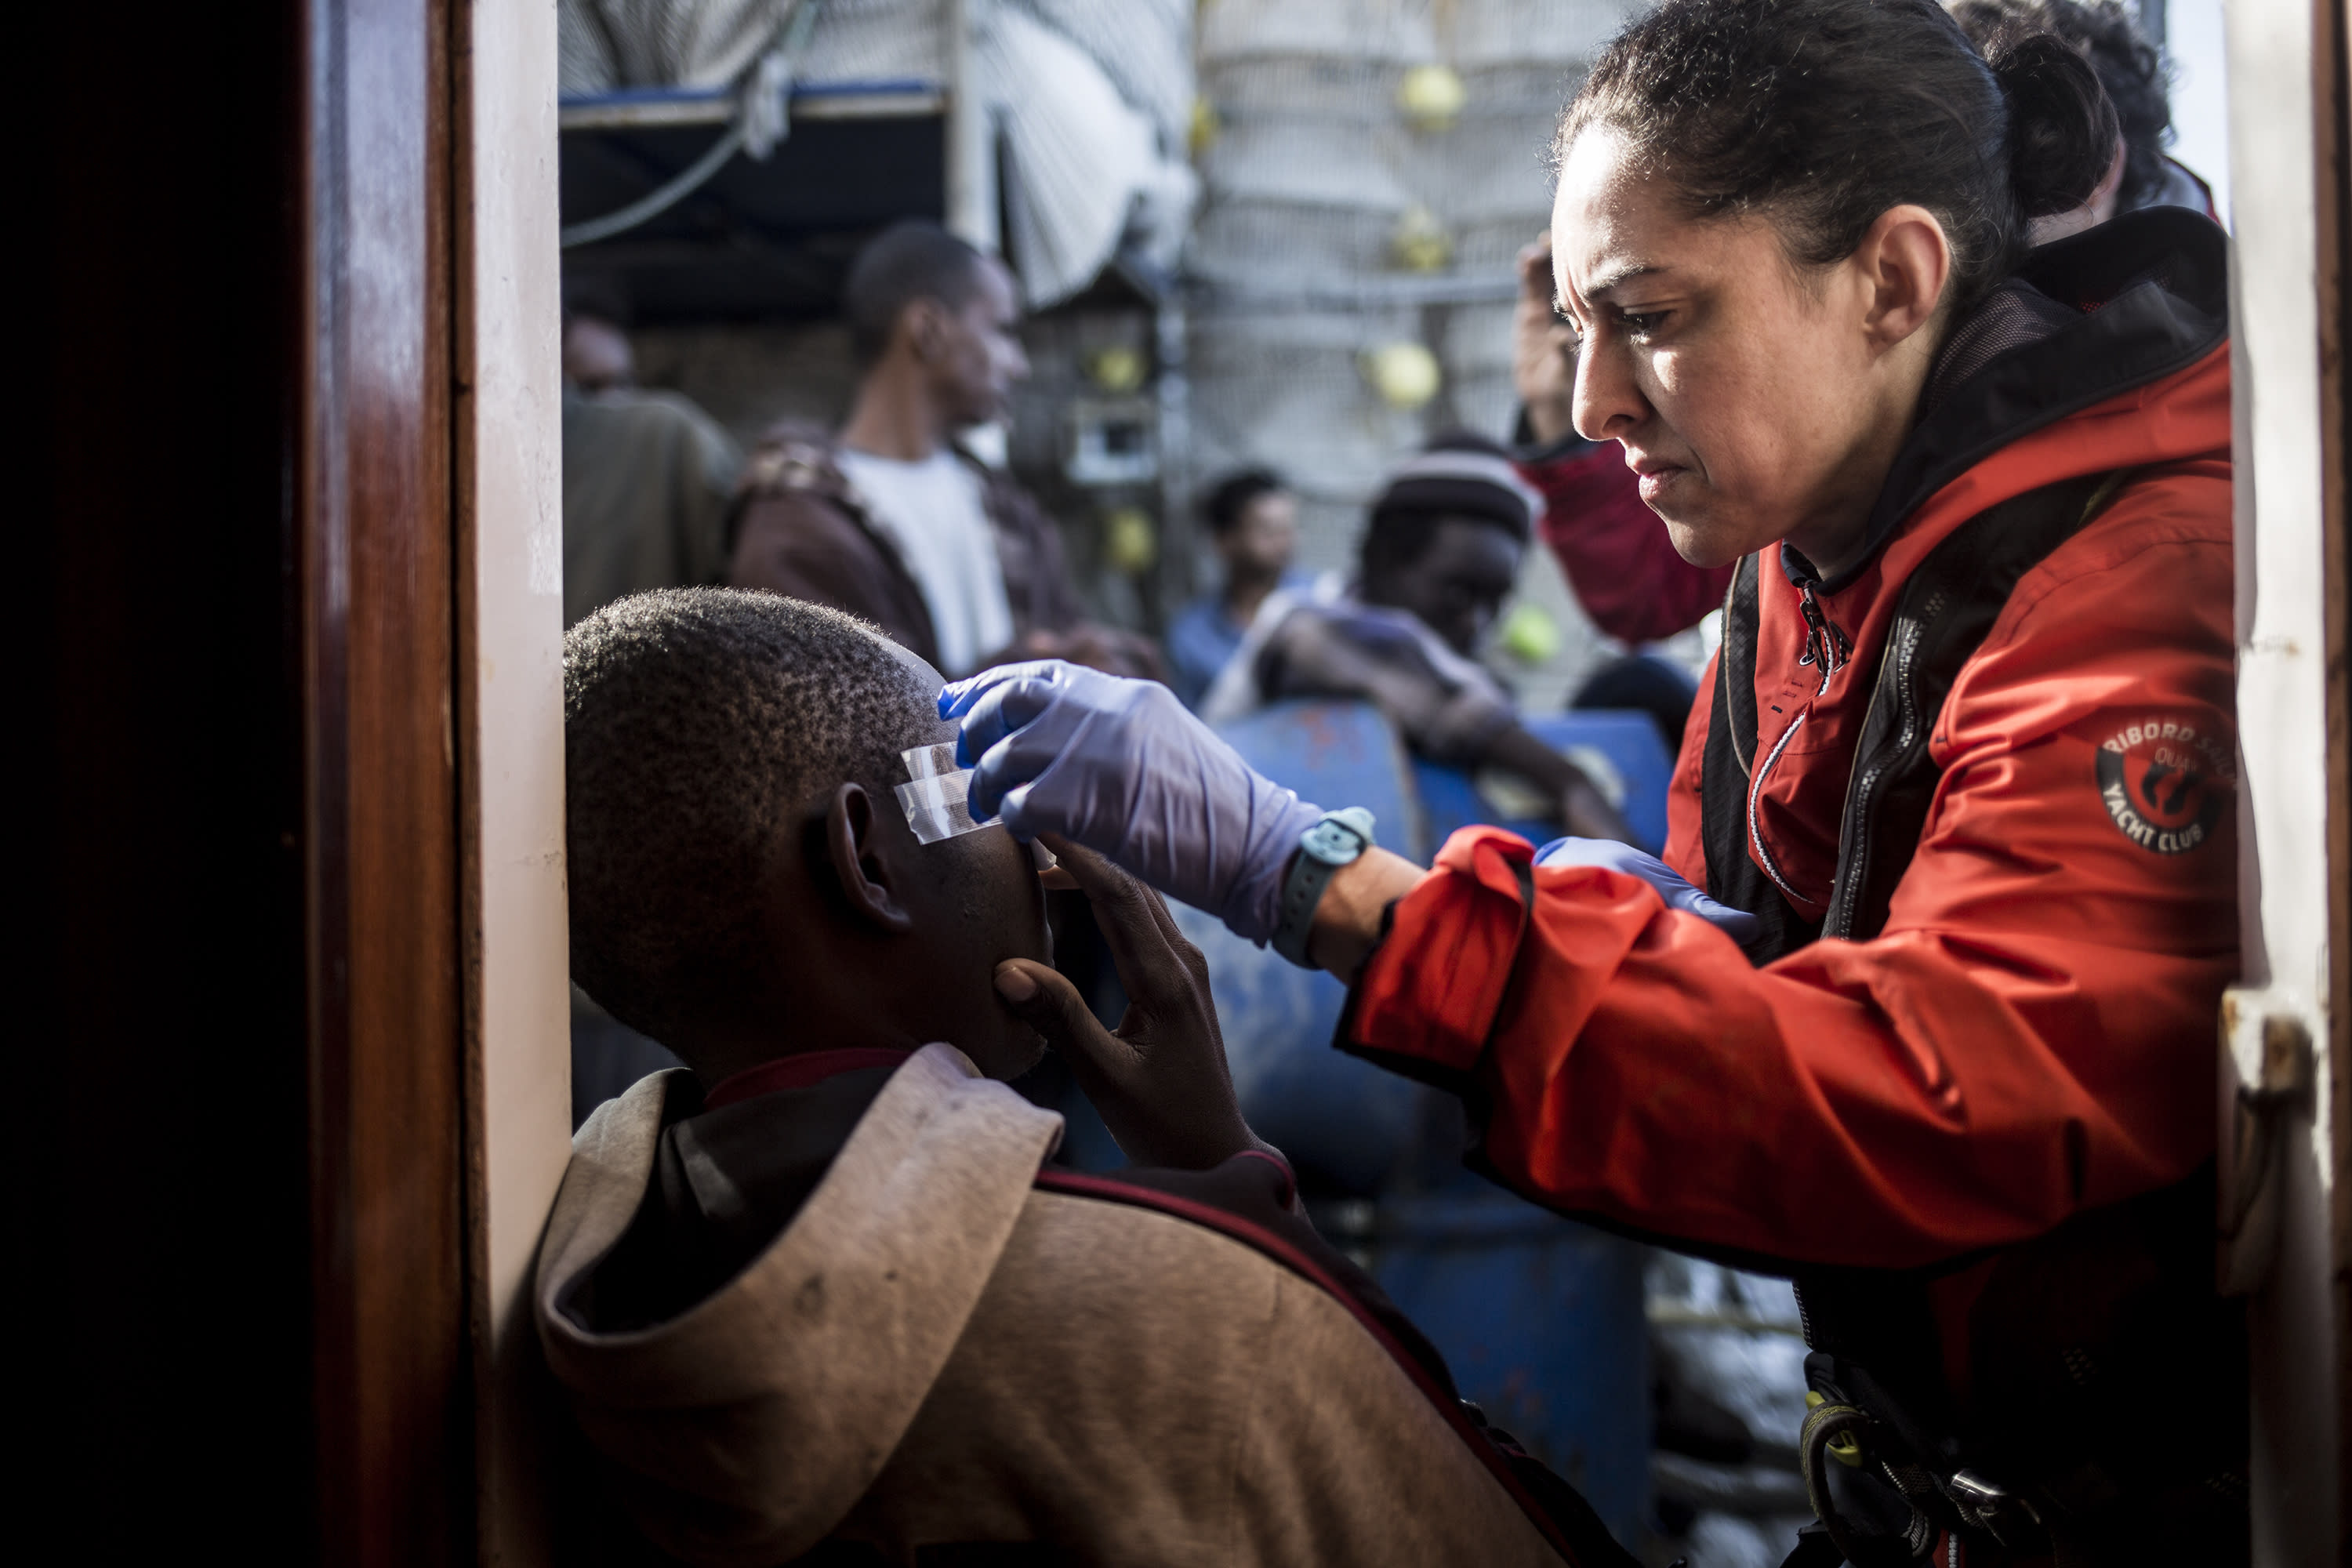 In this photo taken on Saturday, Nov. 24, 2018 photo, a migrant receives medical assistance after being rescued by Nuestra Madre de Loreto, a Spanish fishing vessel, two days ago off the Libyan shore. The Spanish NGO Proactiva Open Arms carried medical checks and provided food, clothes and blankets to the migrants. (AP Photo/Javier Fergo)